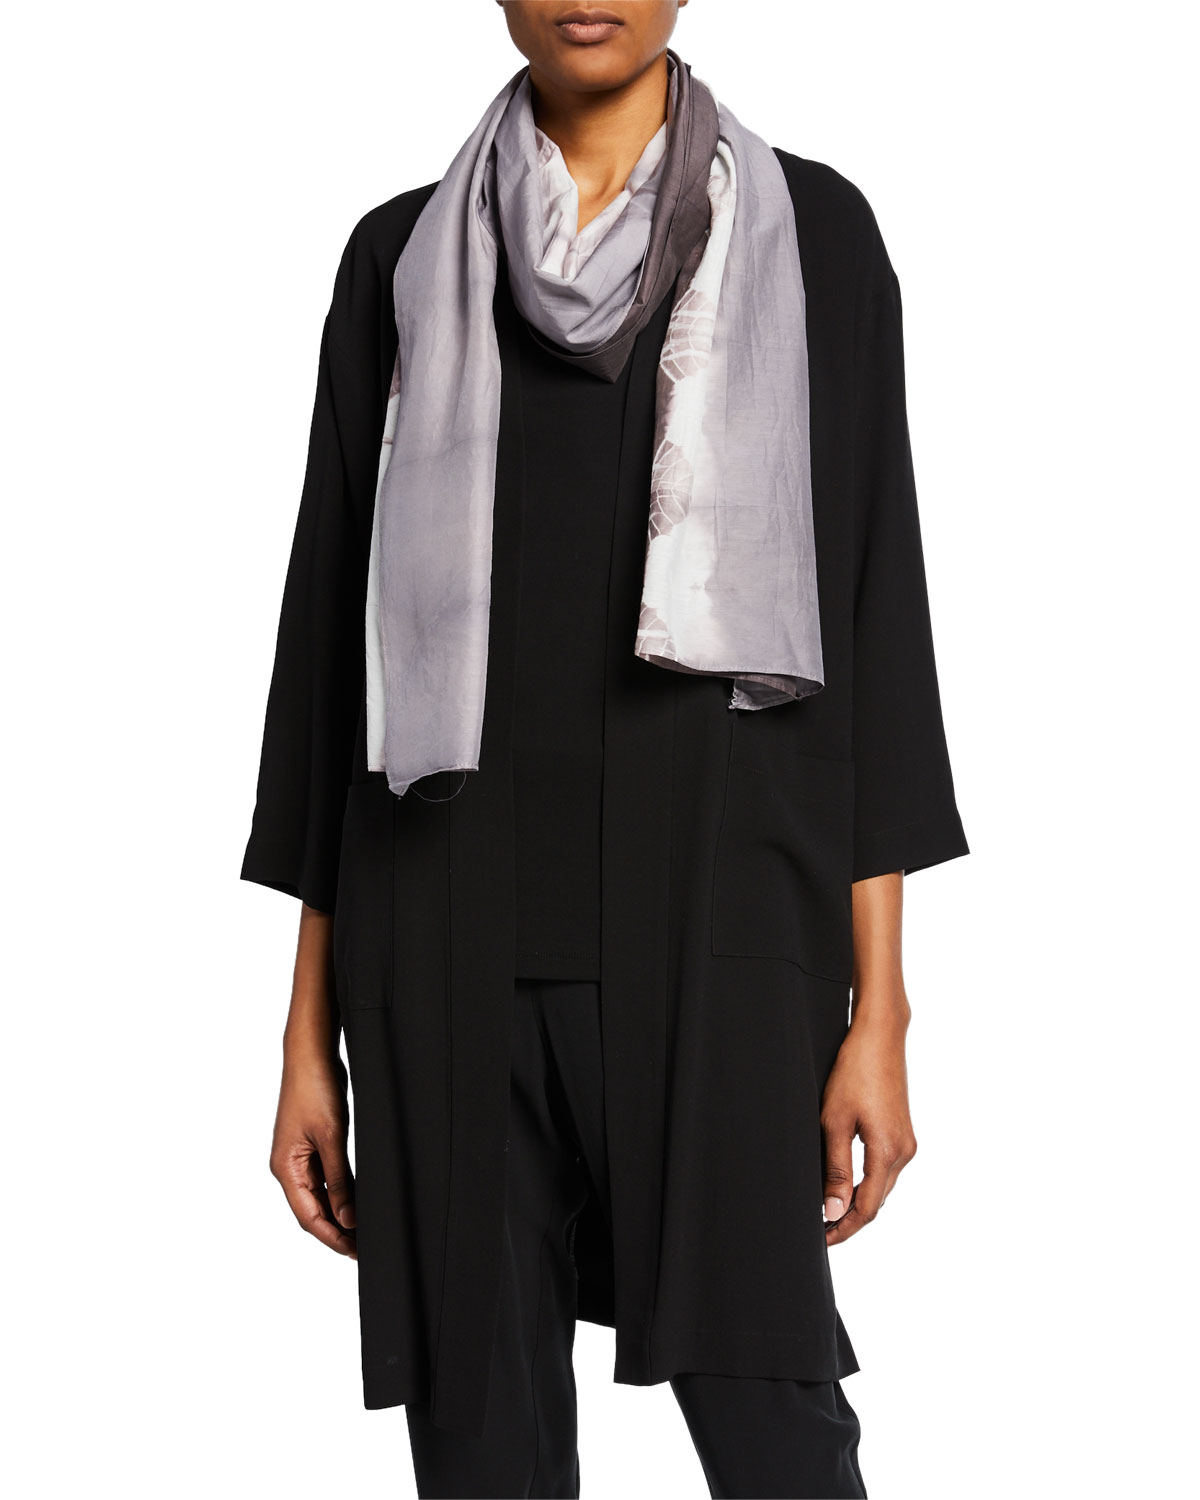 Eileen Fisher Accessories SHIBORI HORIZON SCARF